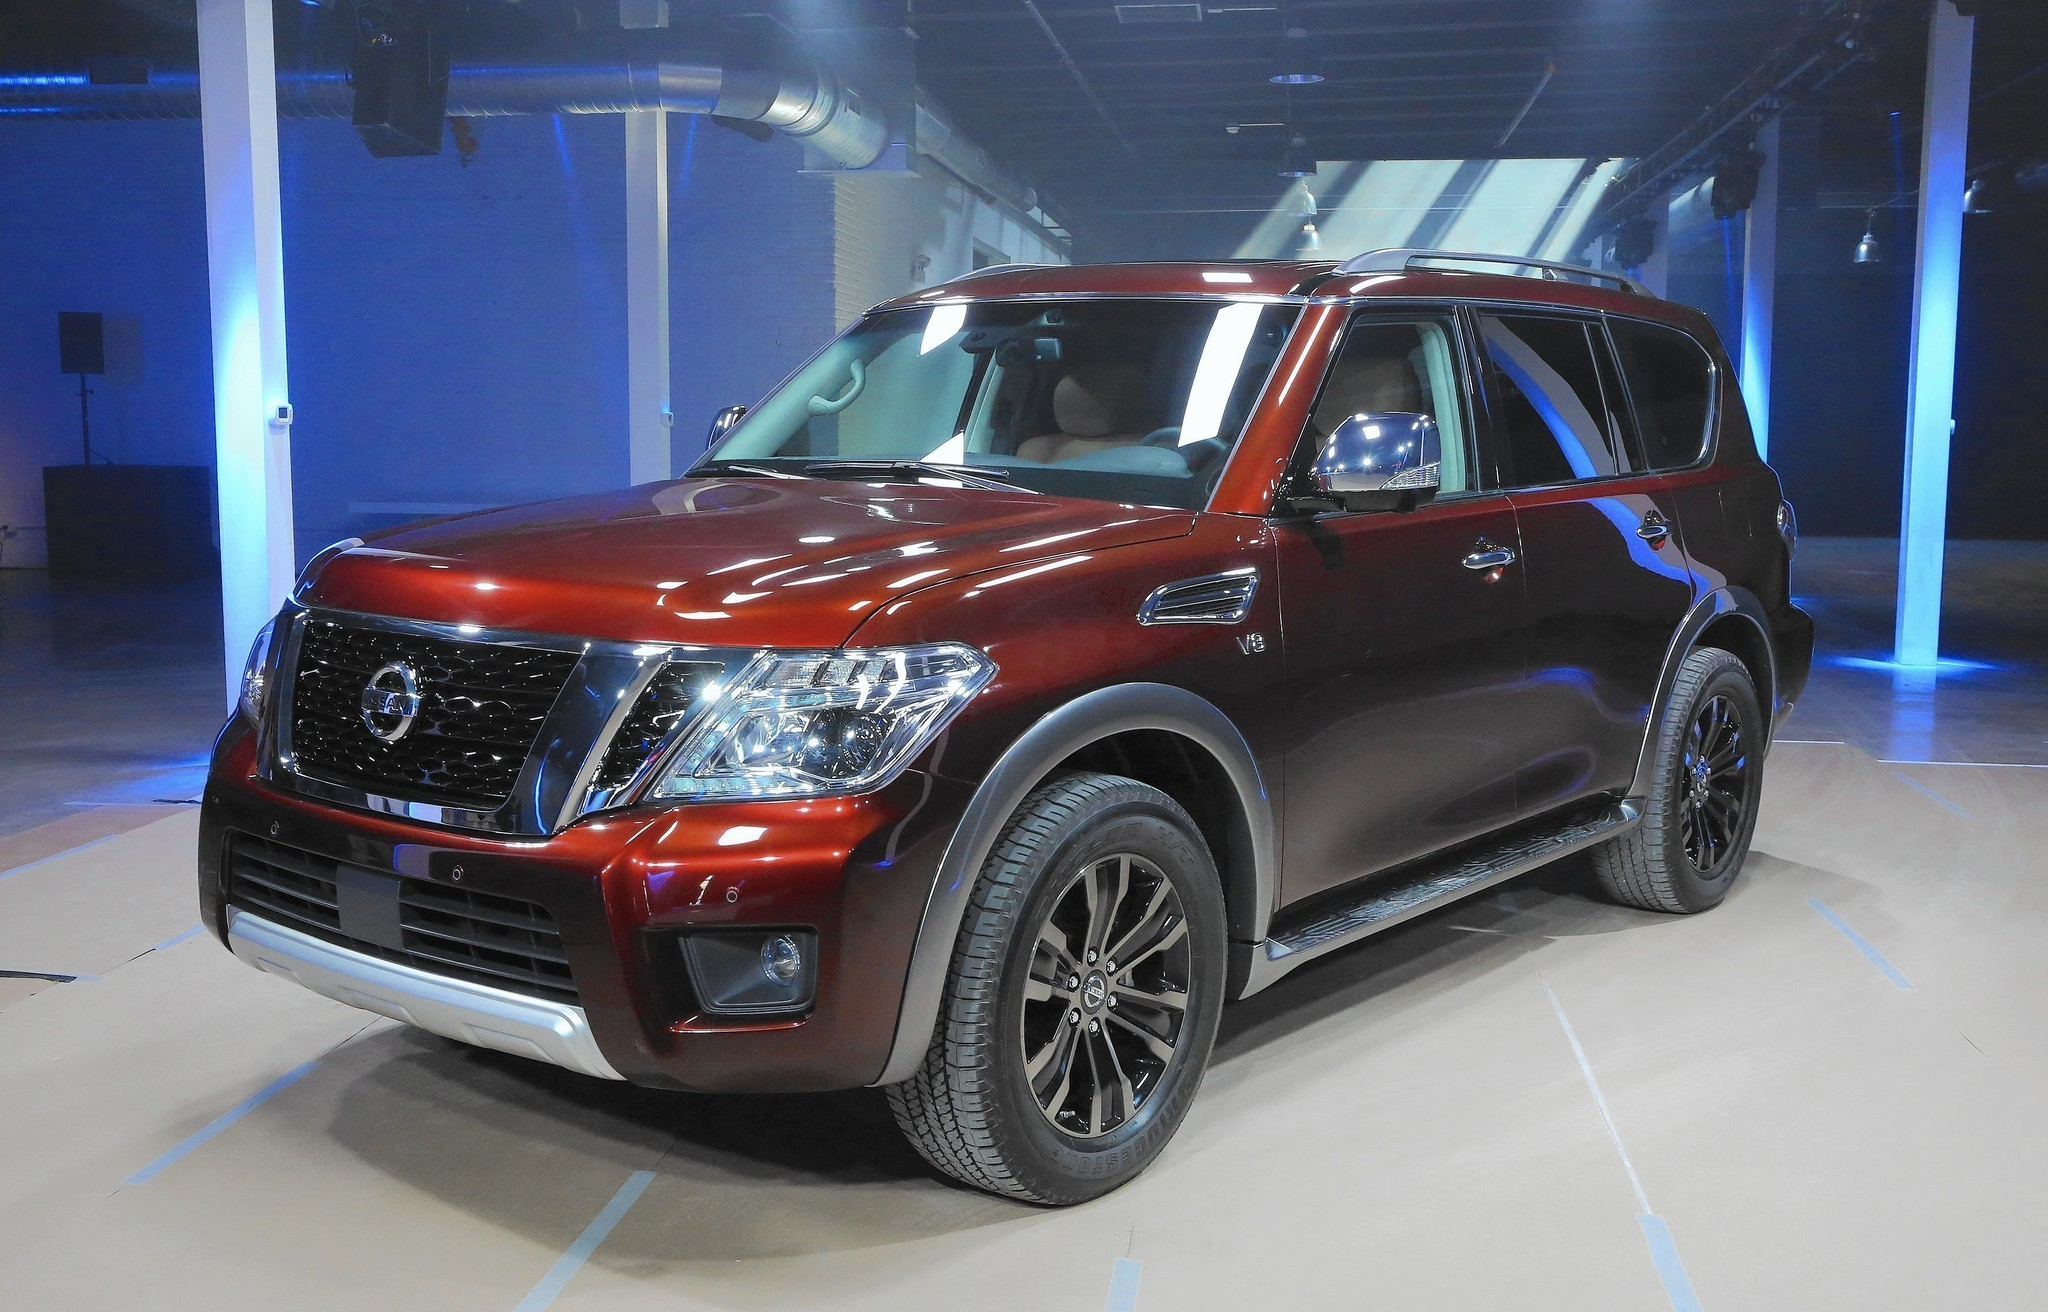 2017 nissan armada full size suv debuts on eve of chicago auto show chicago tribune